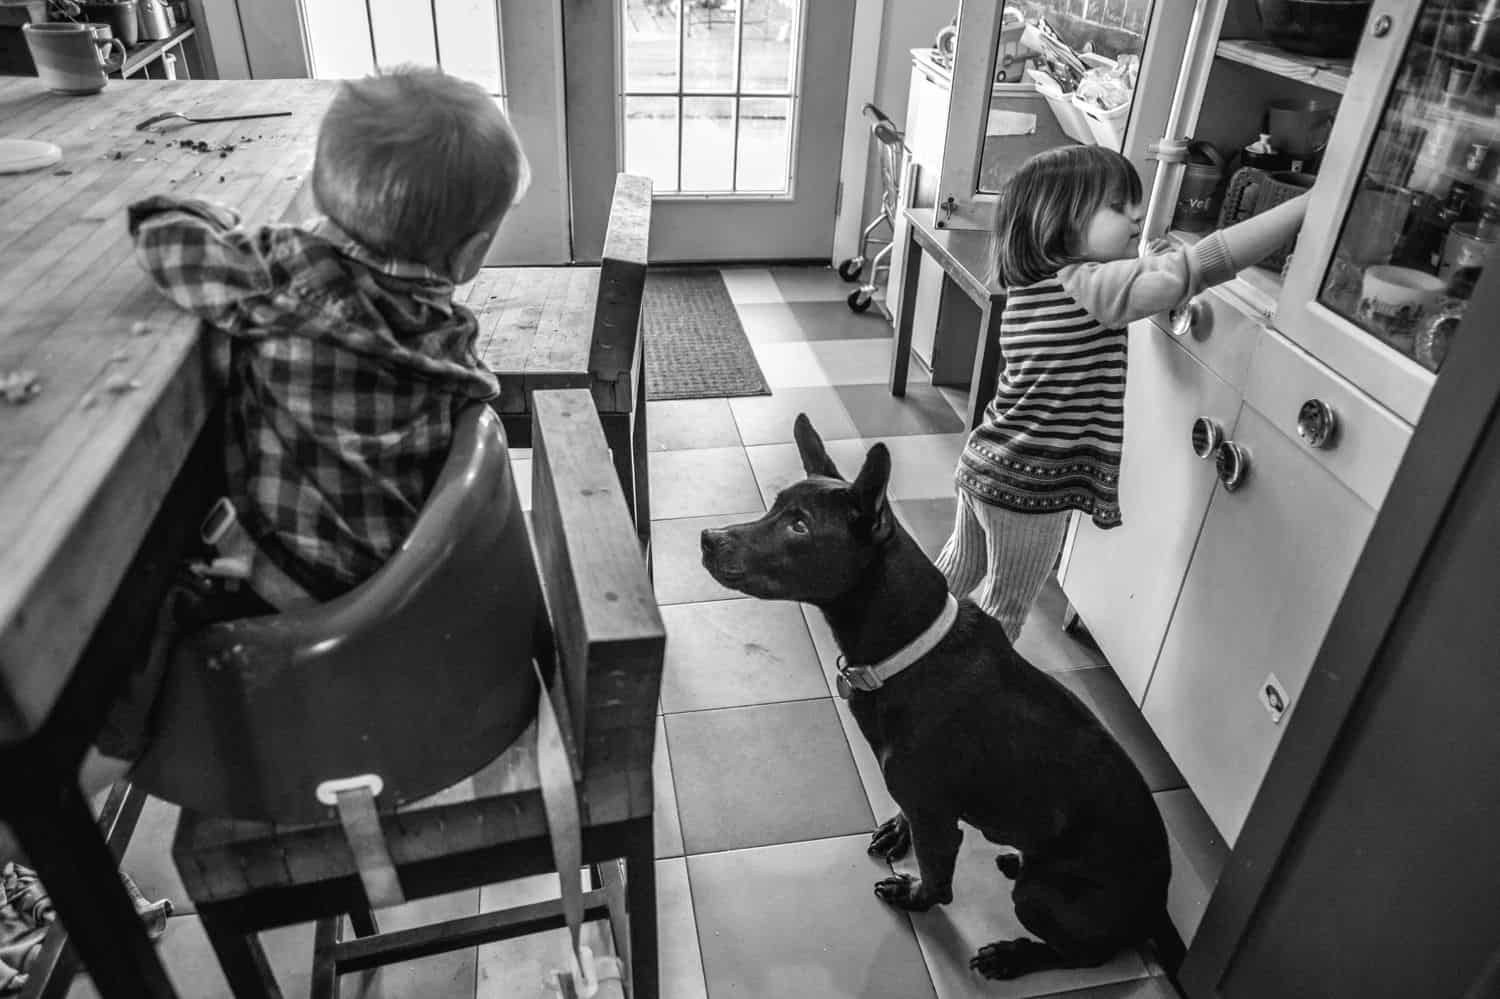 Fearless Family Photos All Have These 4 Ingredients: Lifestyle Photography - Family Dog Begging for Baby's Breakfast